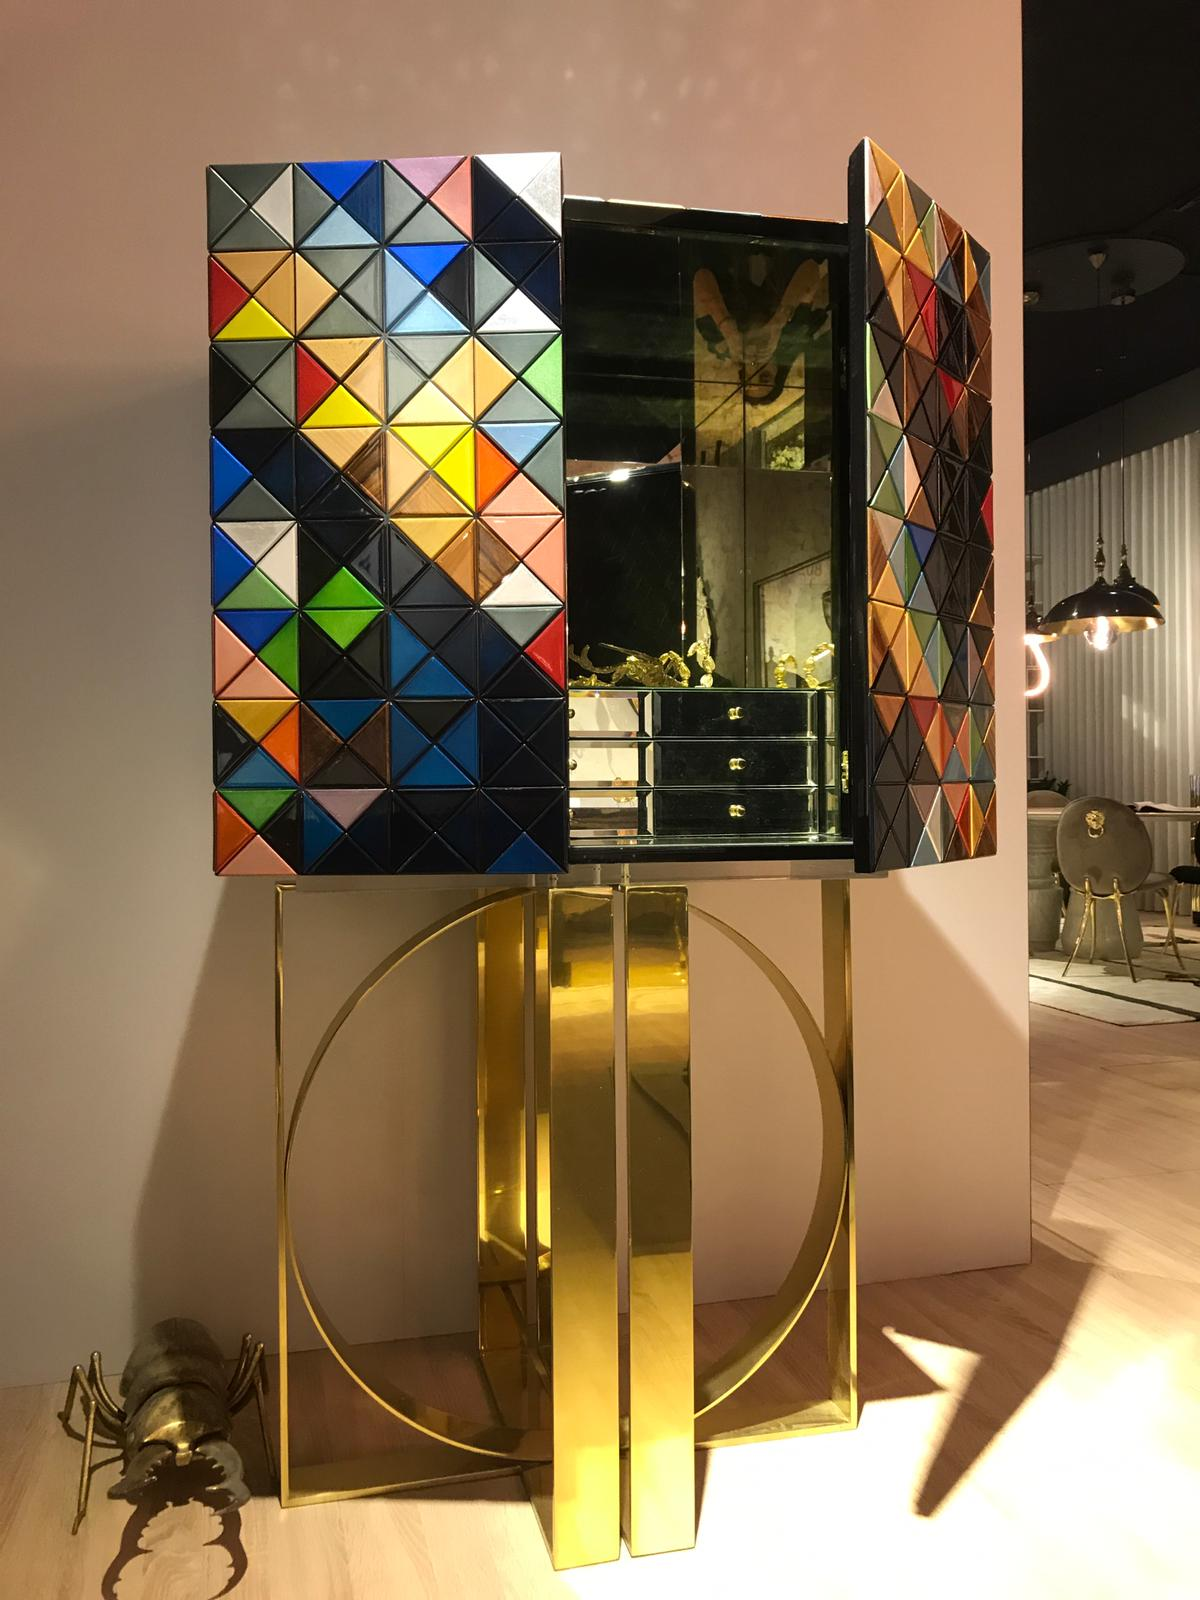 The Best Cabinets From Salone del Mobile 2019 salone del mobile The Best Cabinets From Salone del Mobile 2019 The Best Cabinets From Salone del Mobile 2019 1